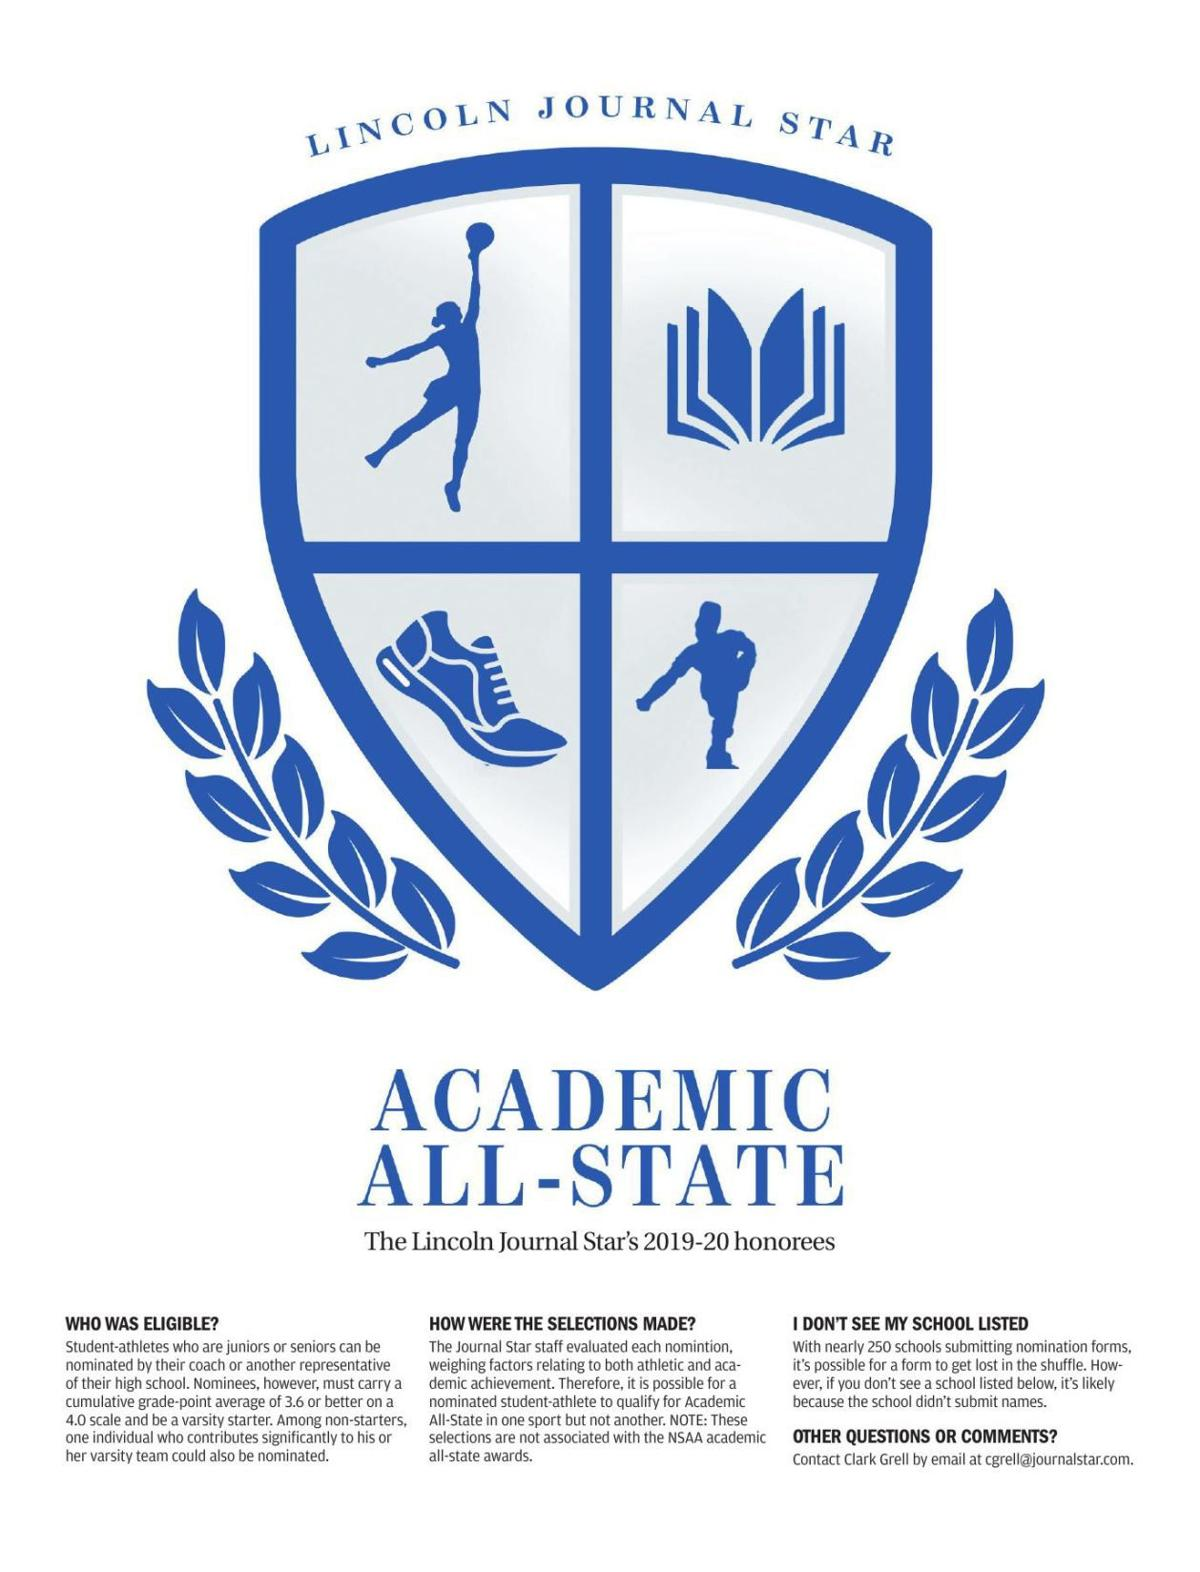 2019-20 Journal Star Academic All-State honorees